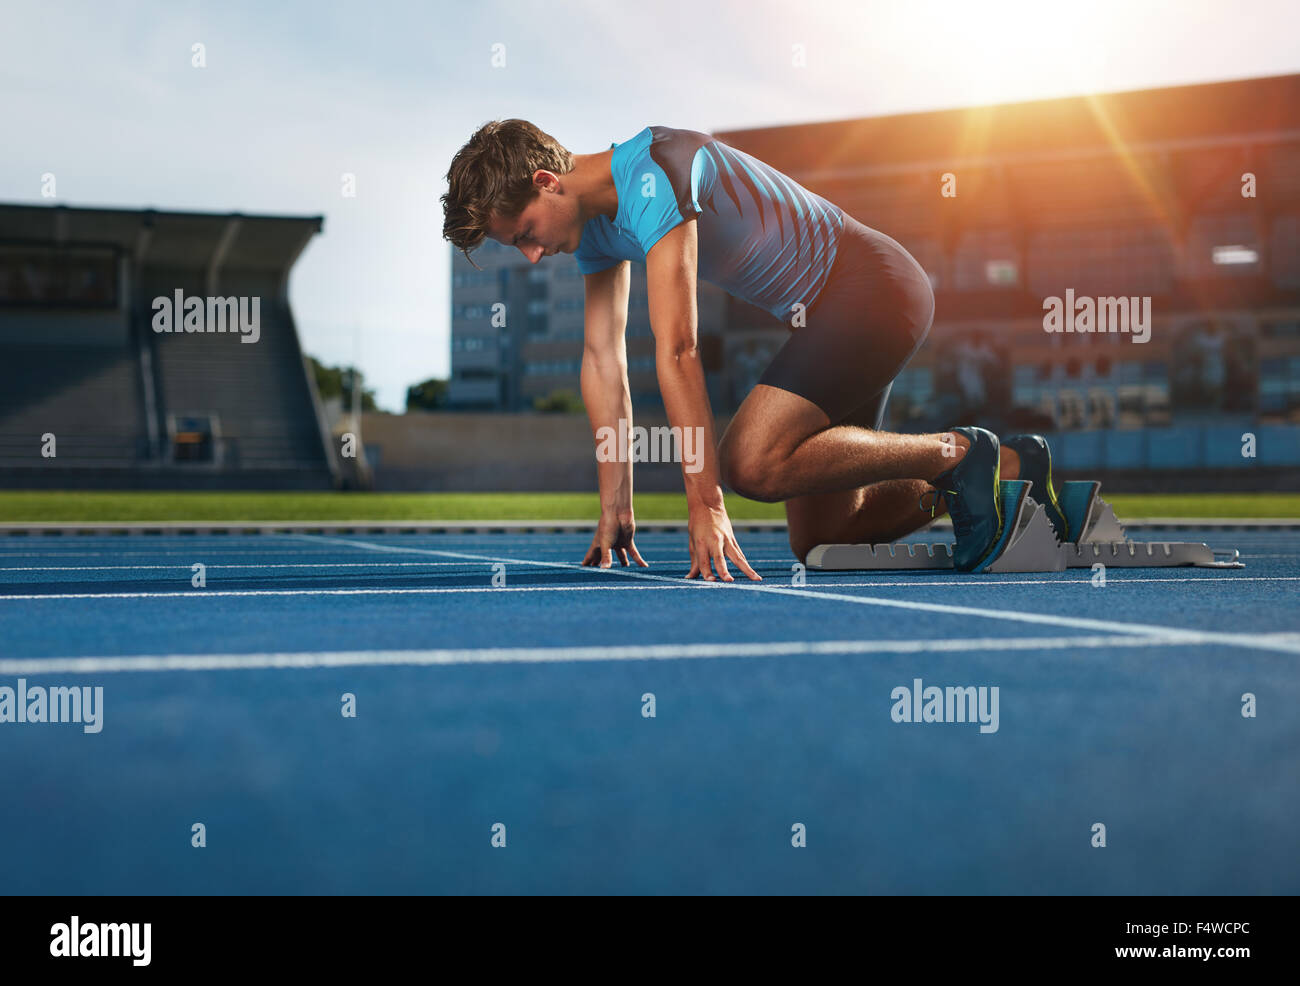 Young athlete at starting position ready to start a race. Male runner ready for sports exercise on racetrack with - Stock Image